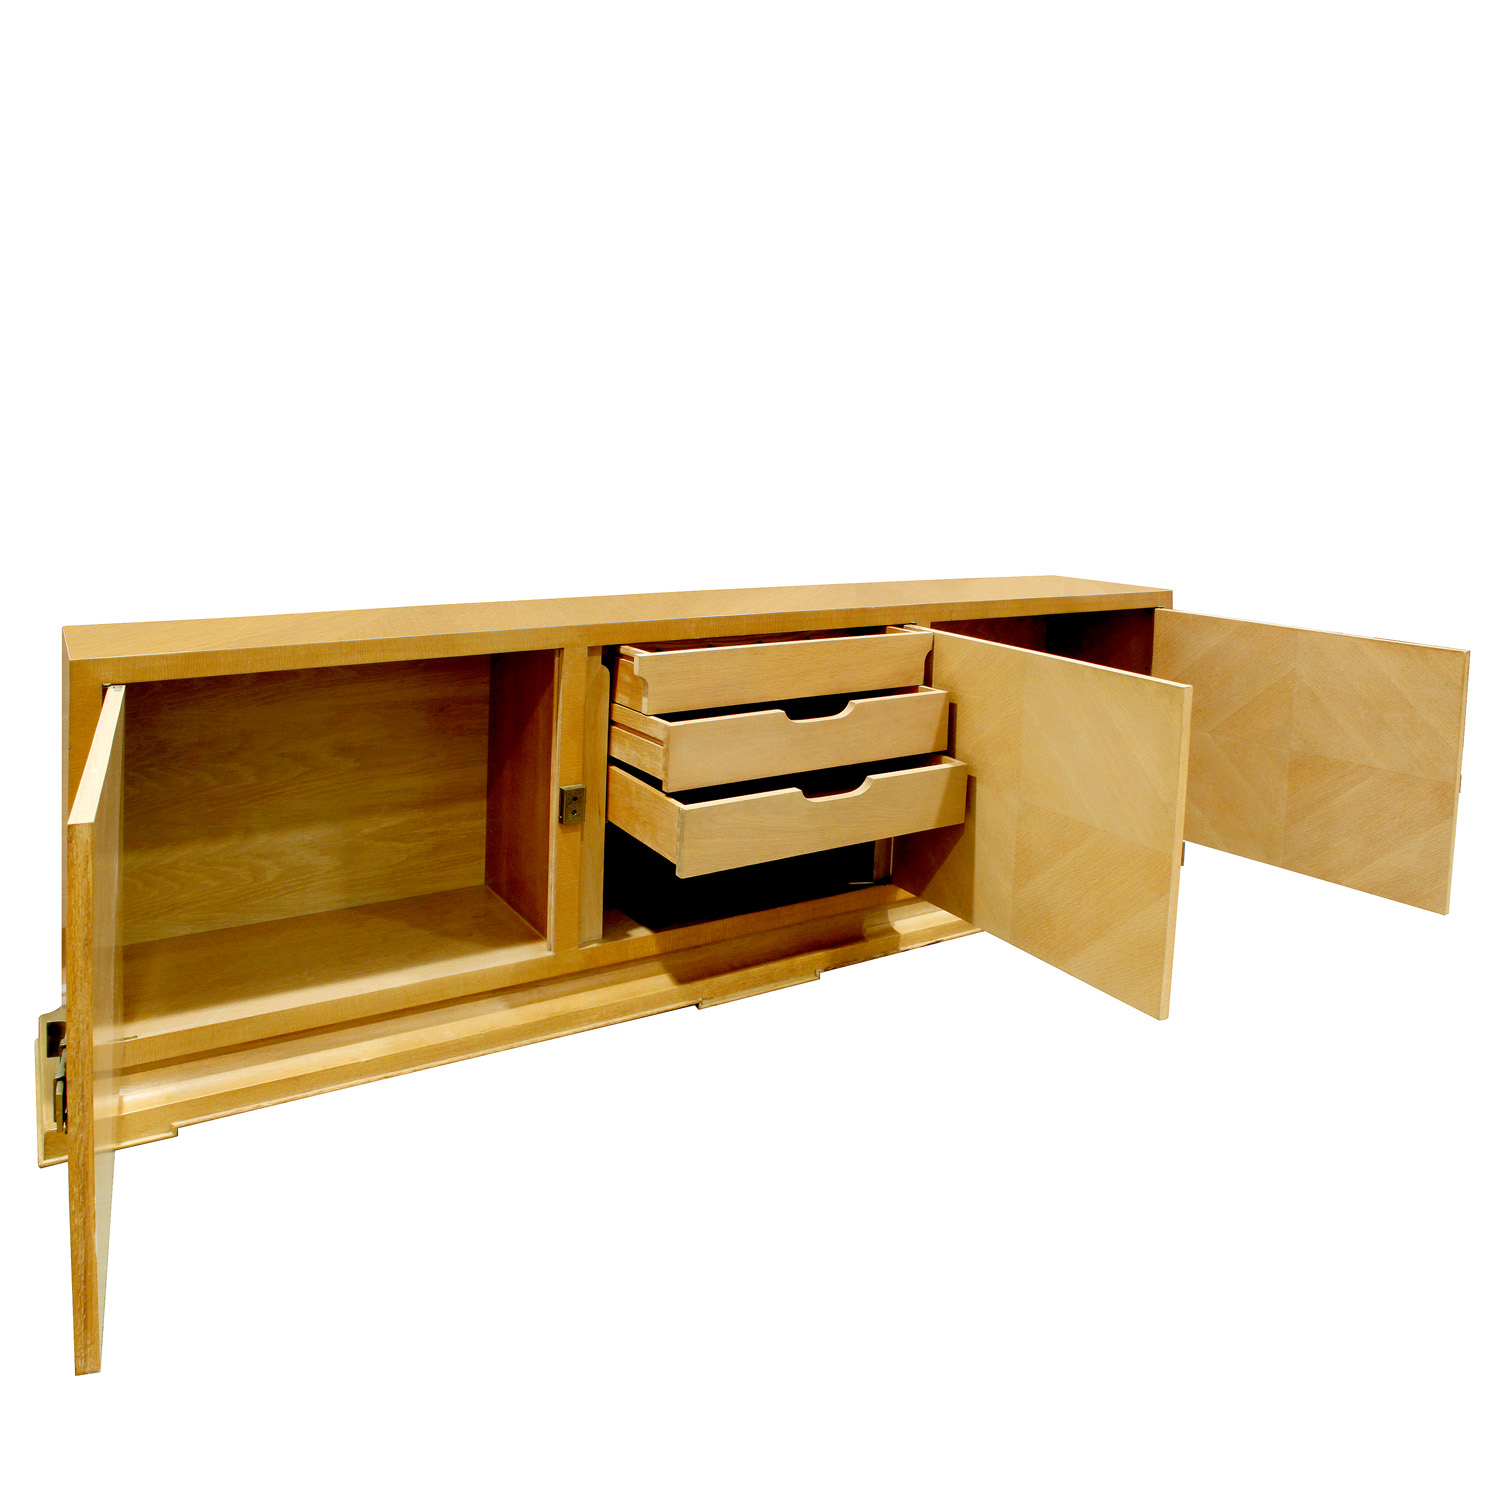 Parzinger 250 lrg 3dr brass bolts credenza60 angle drs open.jpg